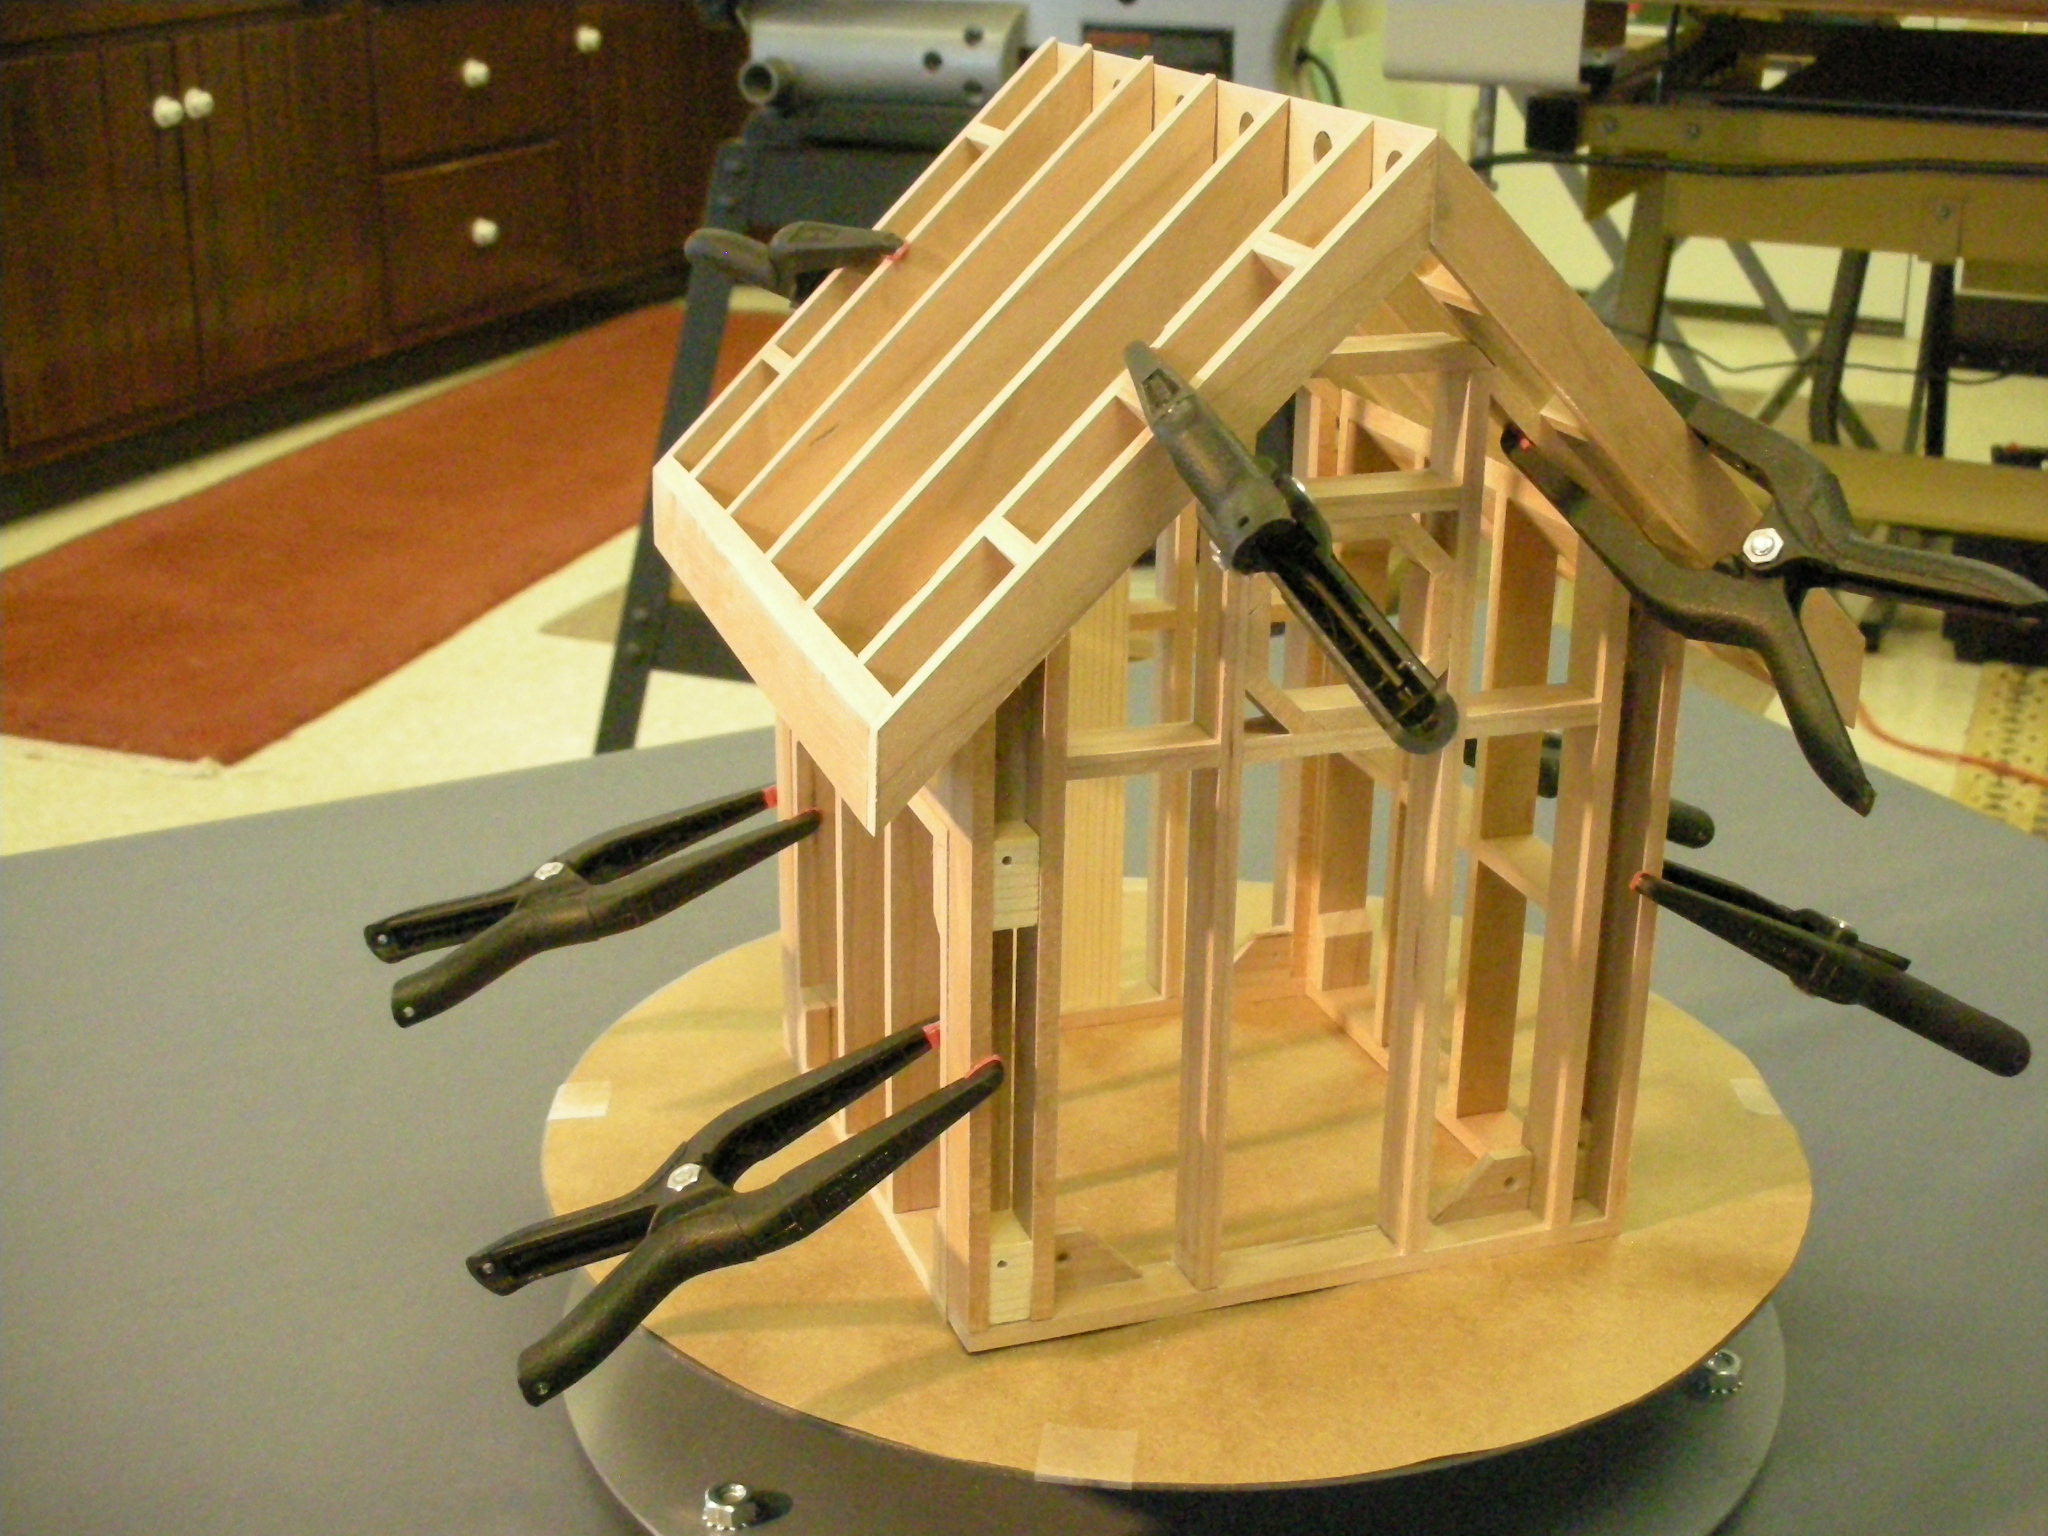 Best ideas about DIY Project Plans . Save or Pin Diy Woodworking Projects Teds Woodworking Plans Who Is Now.